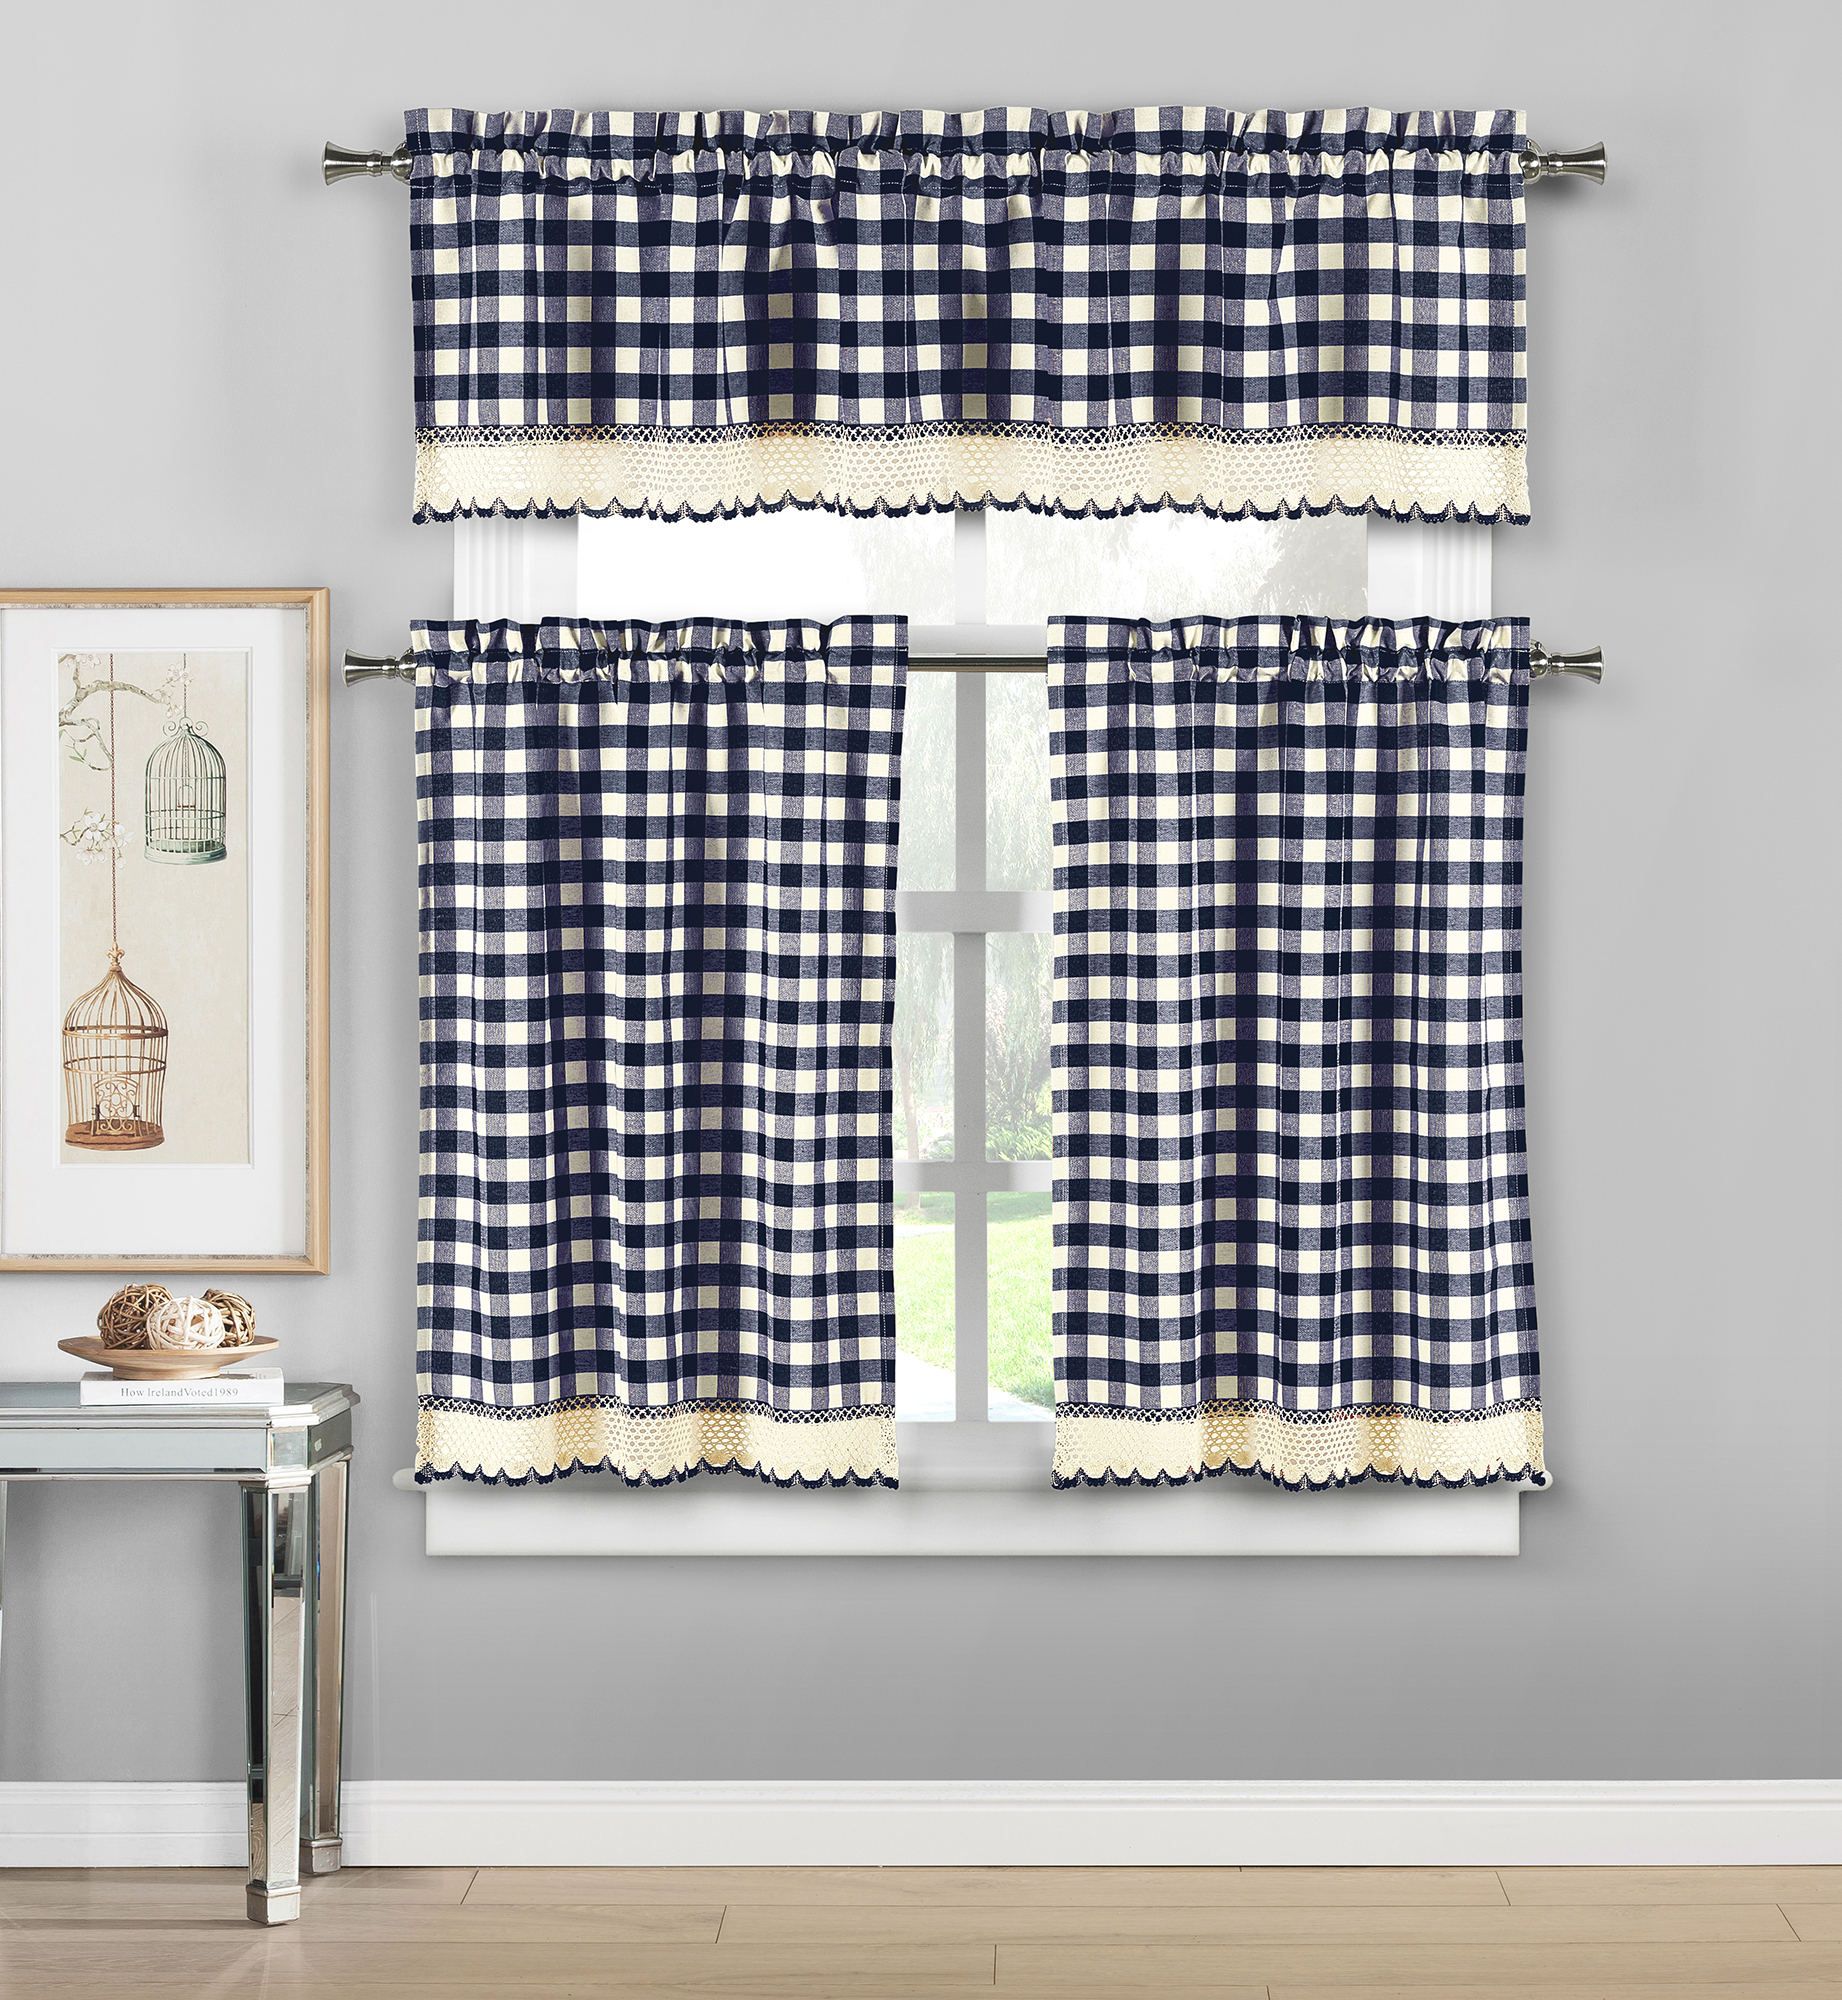 Details About Plaid Checkered Crochet Cotton Blend 3pc Window Curtain Kitchen Tier & Valance Inside Cotton Lace 5 Piece Window Tier And Swag Sets (View 10 of 20)